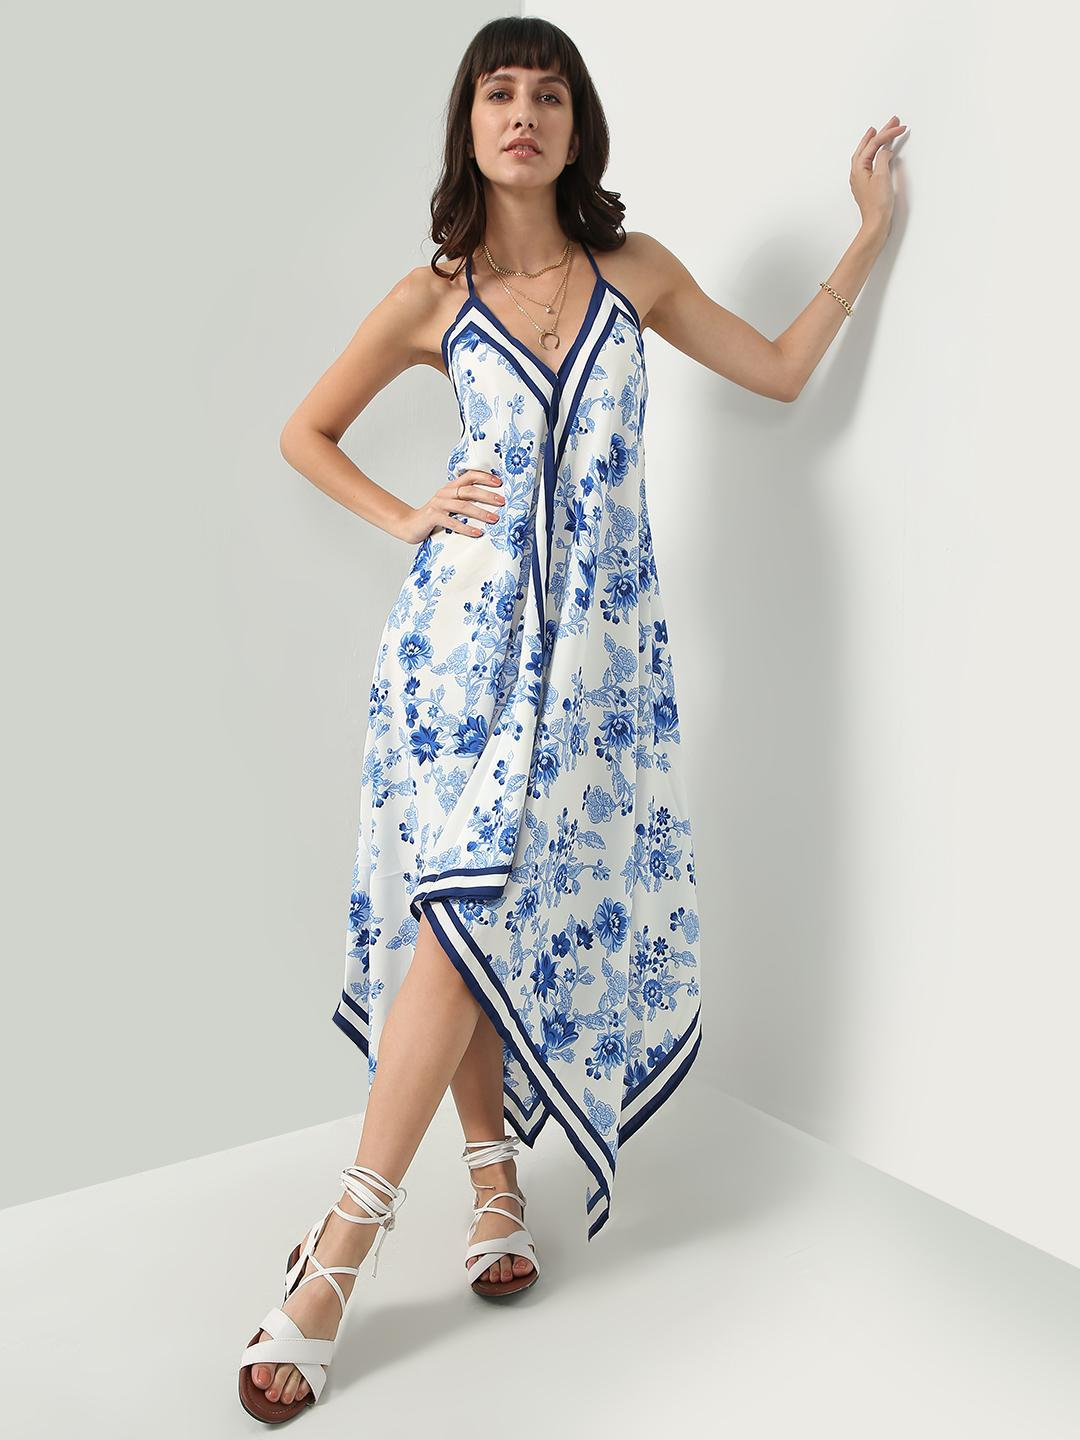 Oxolloxo White All Over Floral Print Strappy Maxi Dress 1